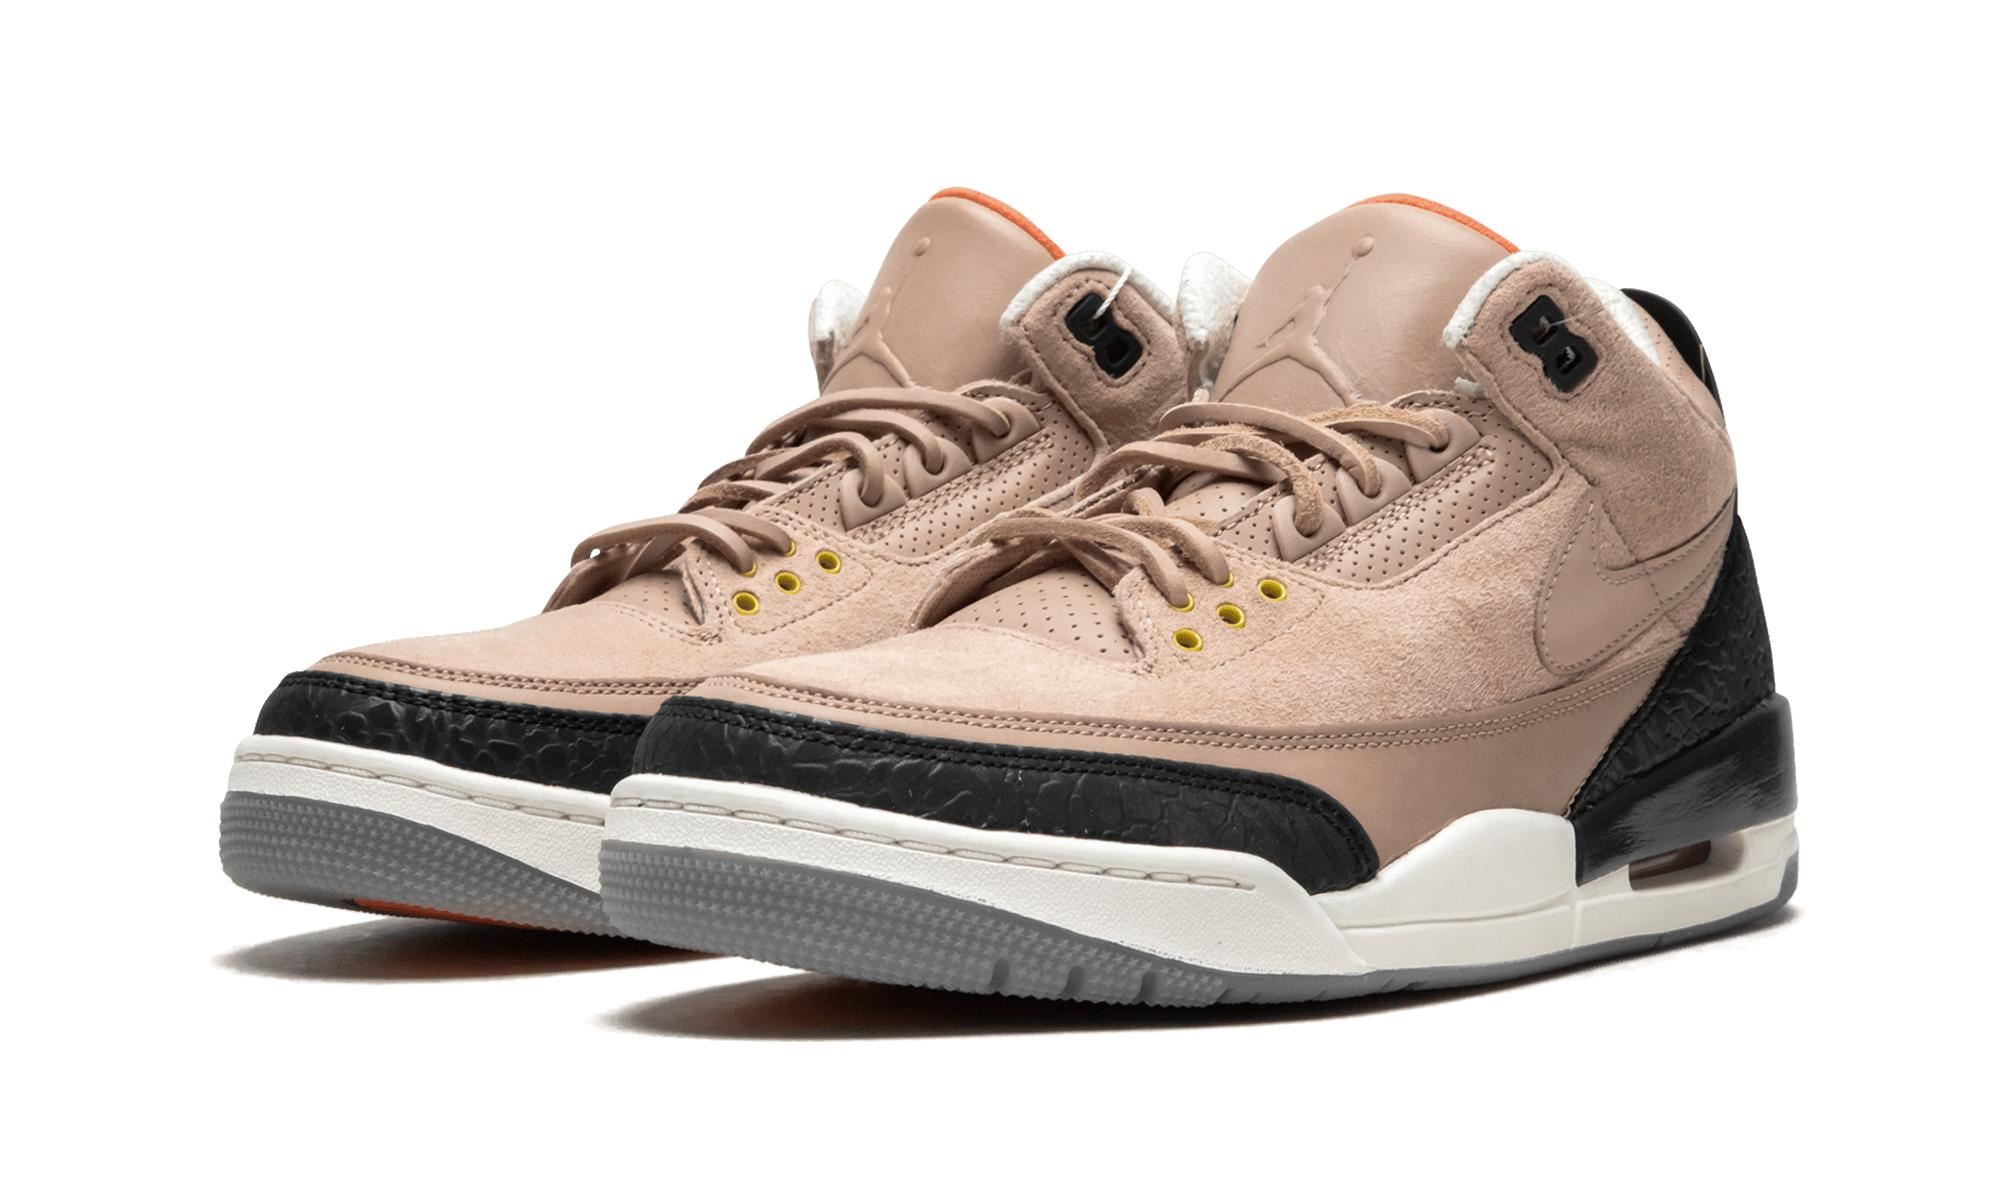 696c6b3eba2 Nike - Natural Air 3 Jth for Men - Lyst. View fullscreen